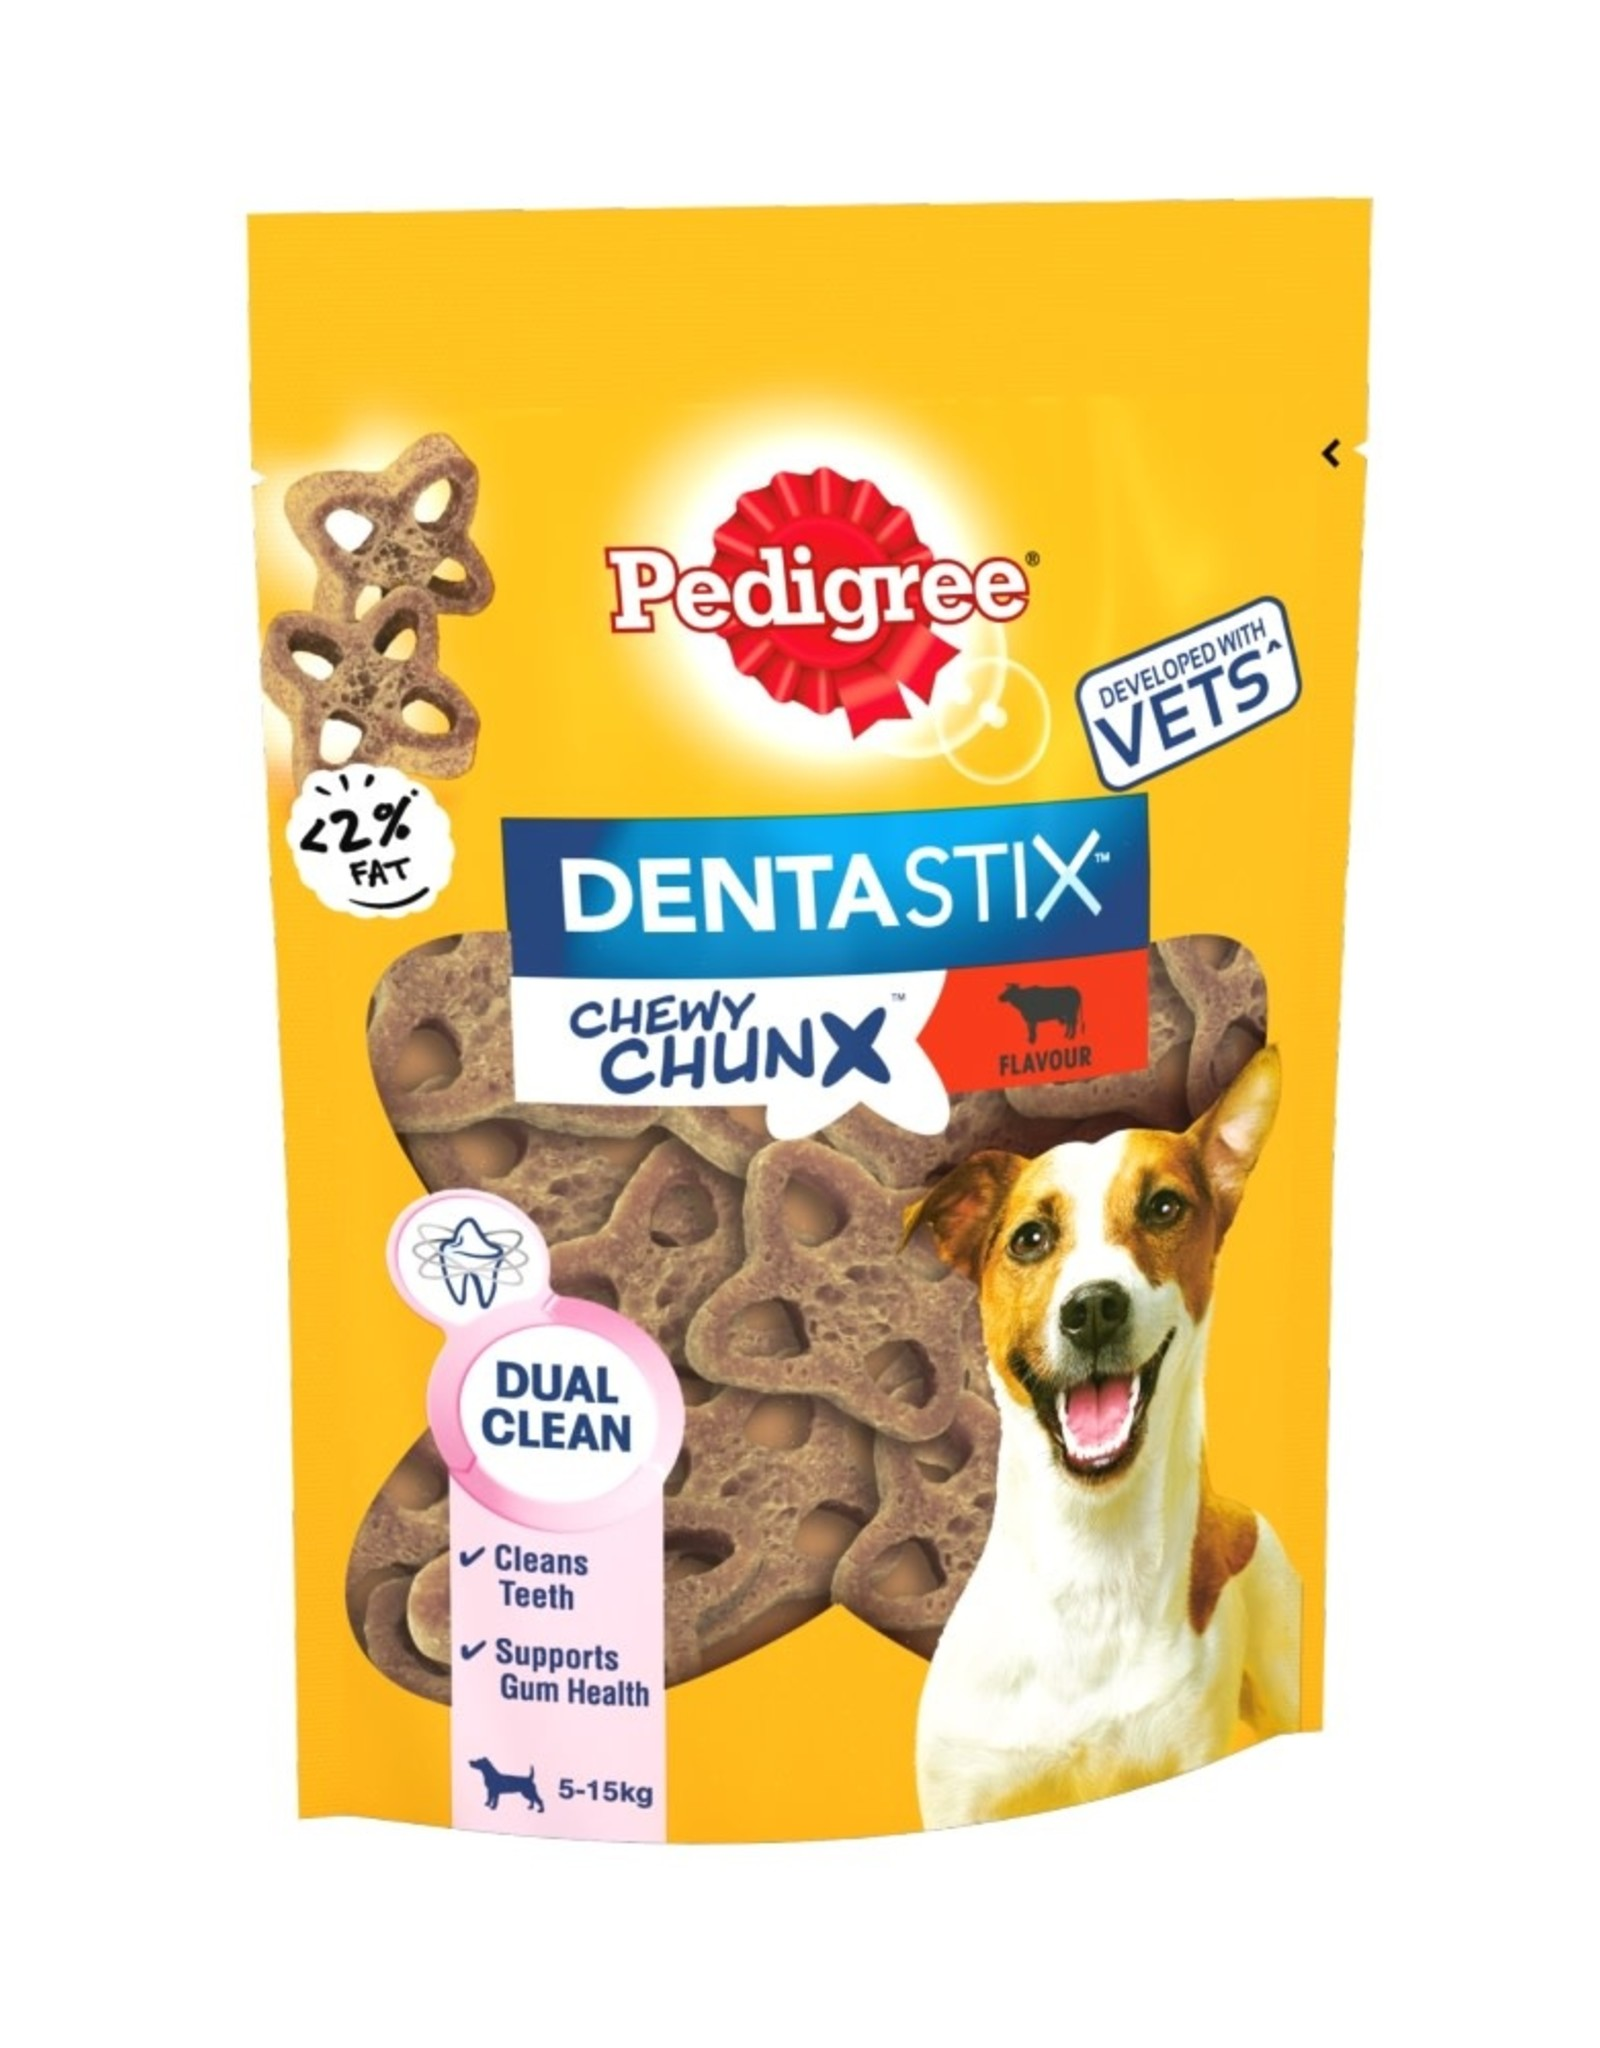 Pedigree Dentastix Chewy Chunx Mini Dog Treats Beef Flavour 68g